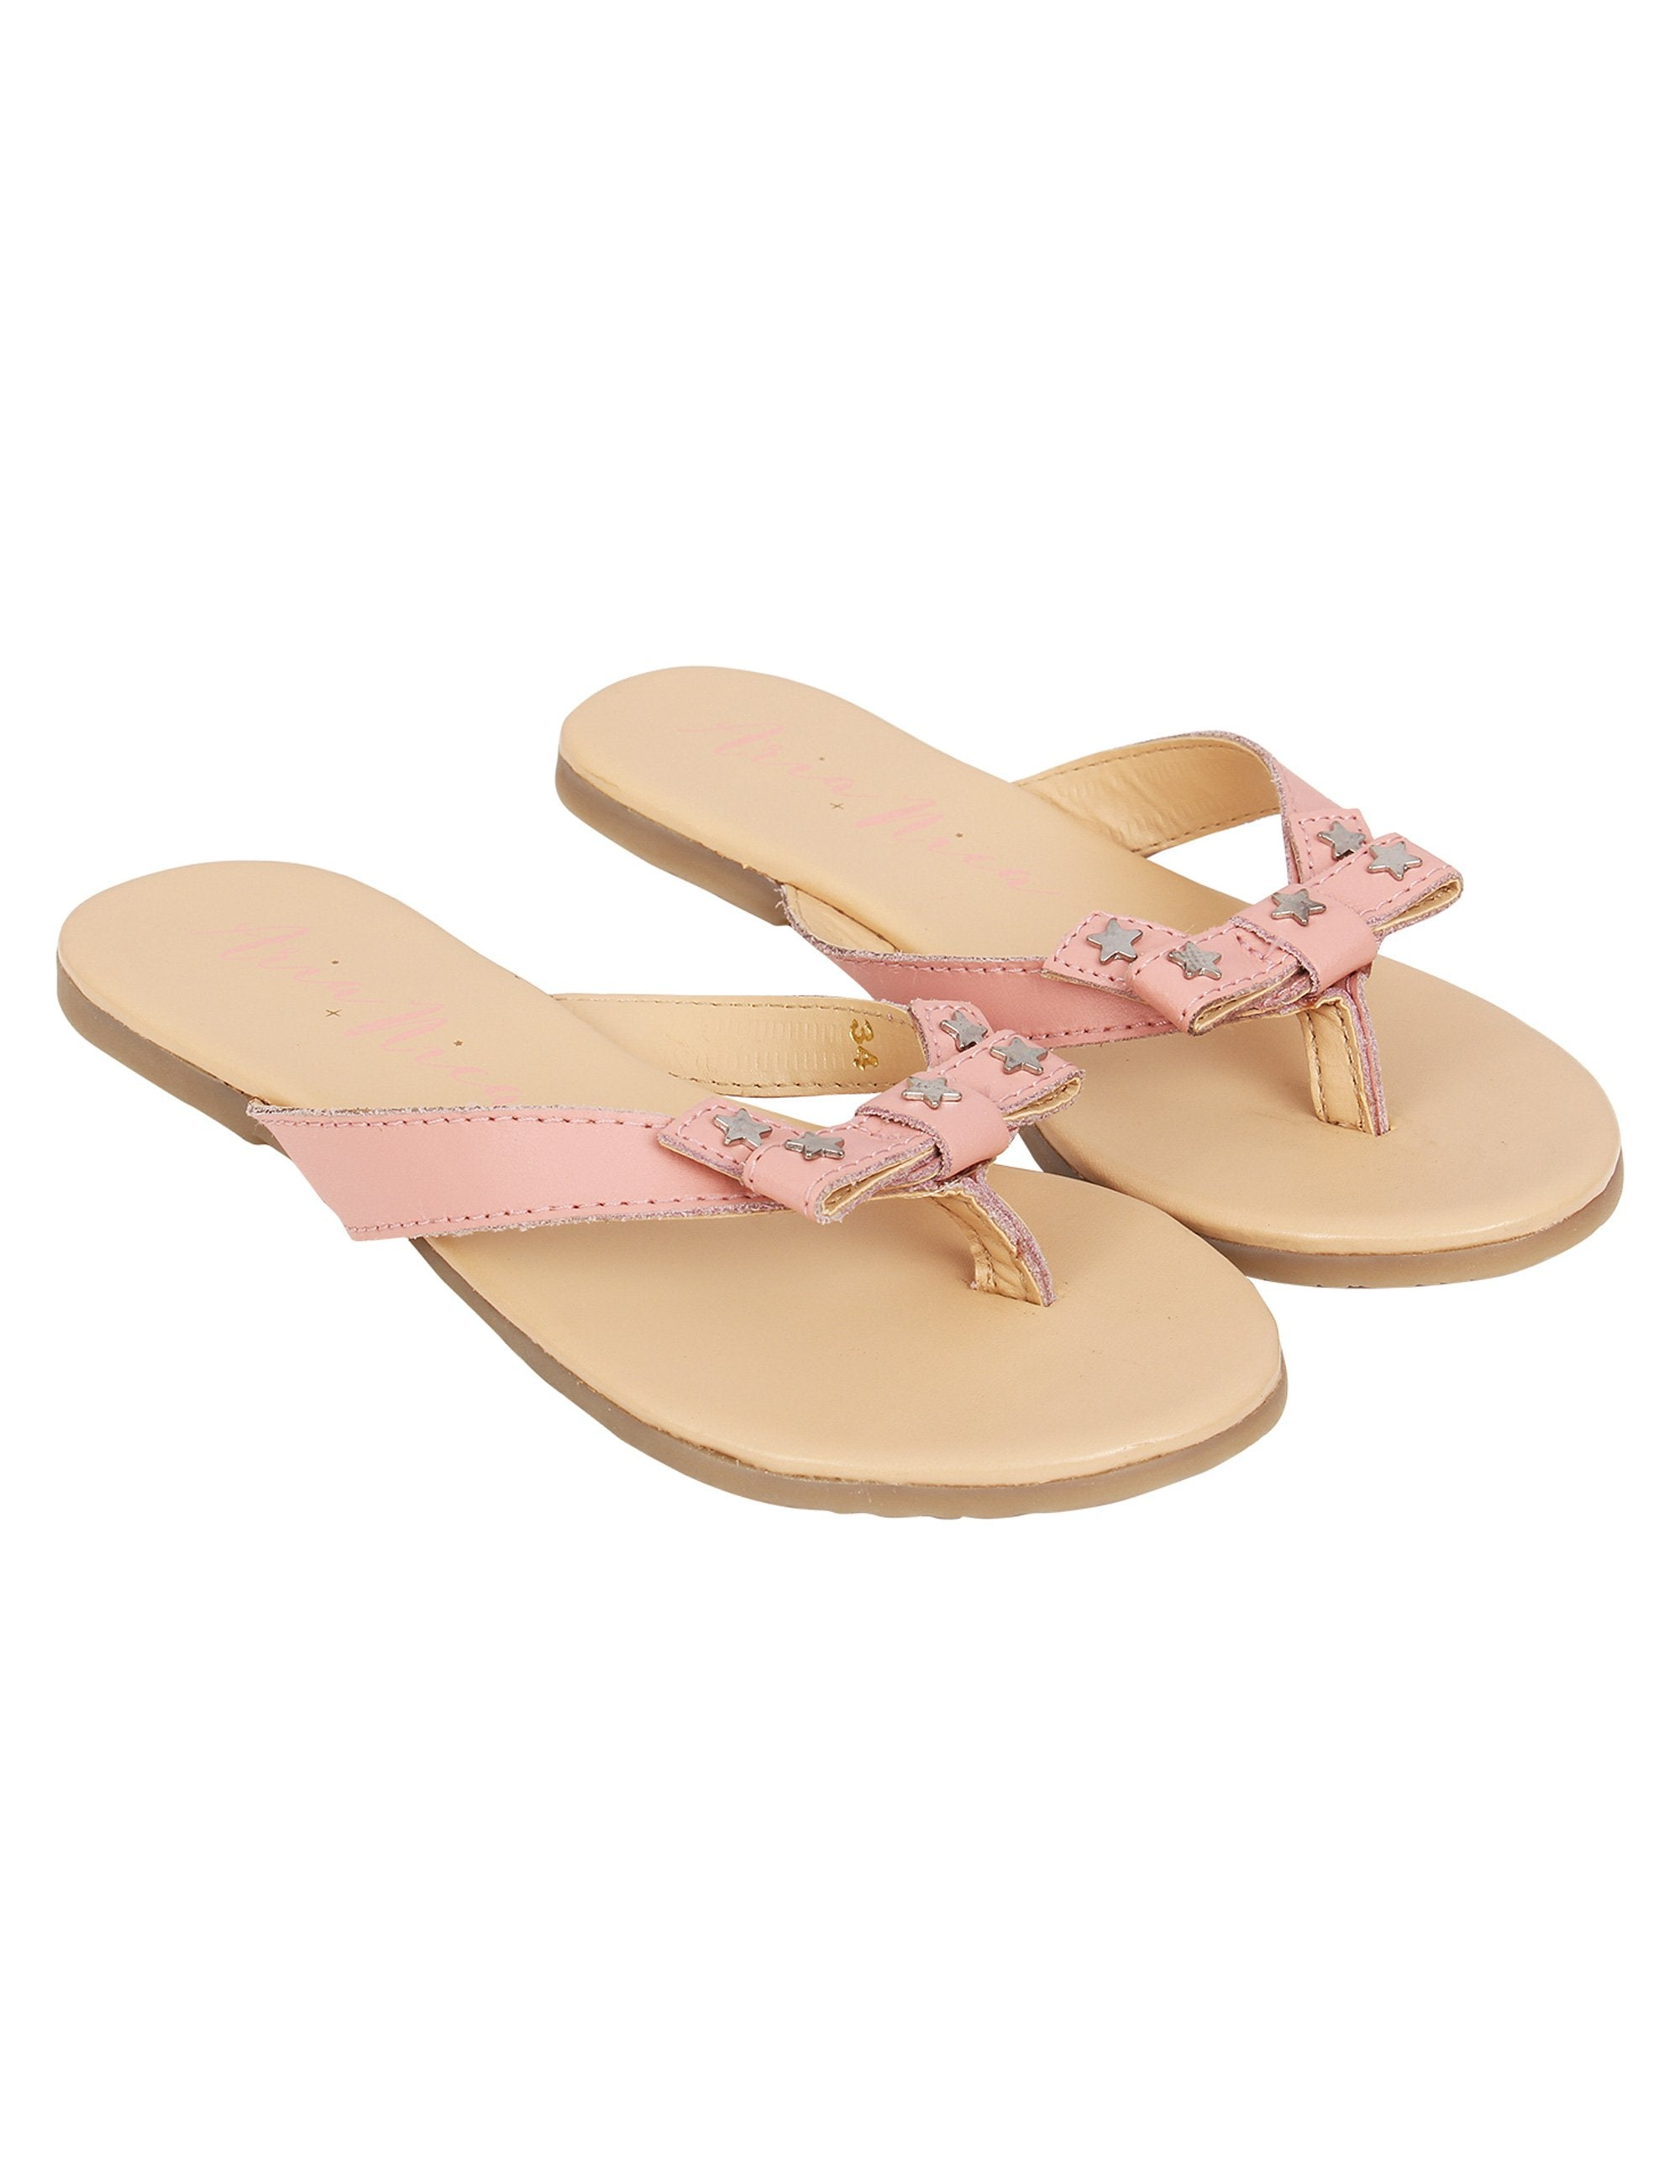 Stylish Flats for Girls in Baby pink colour